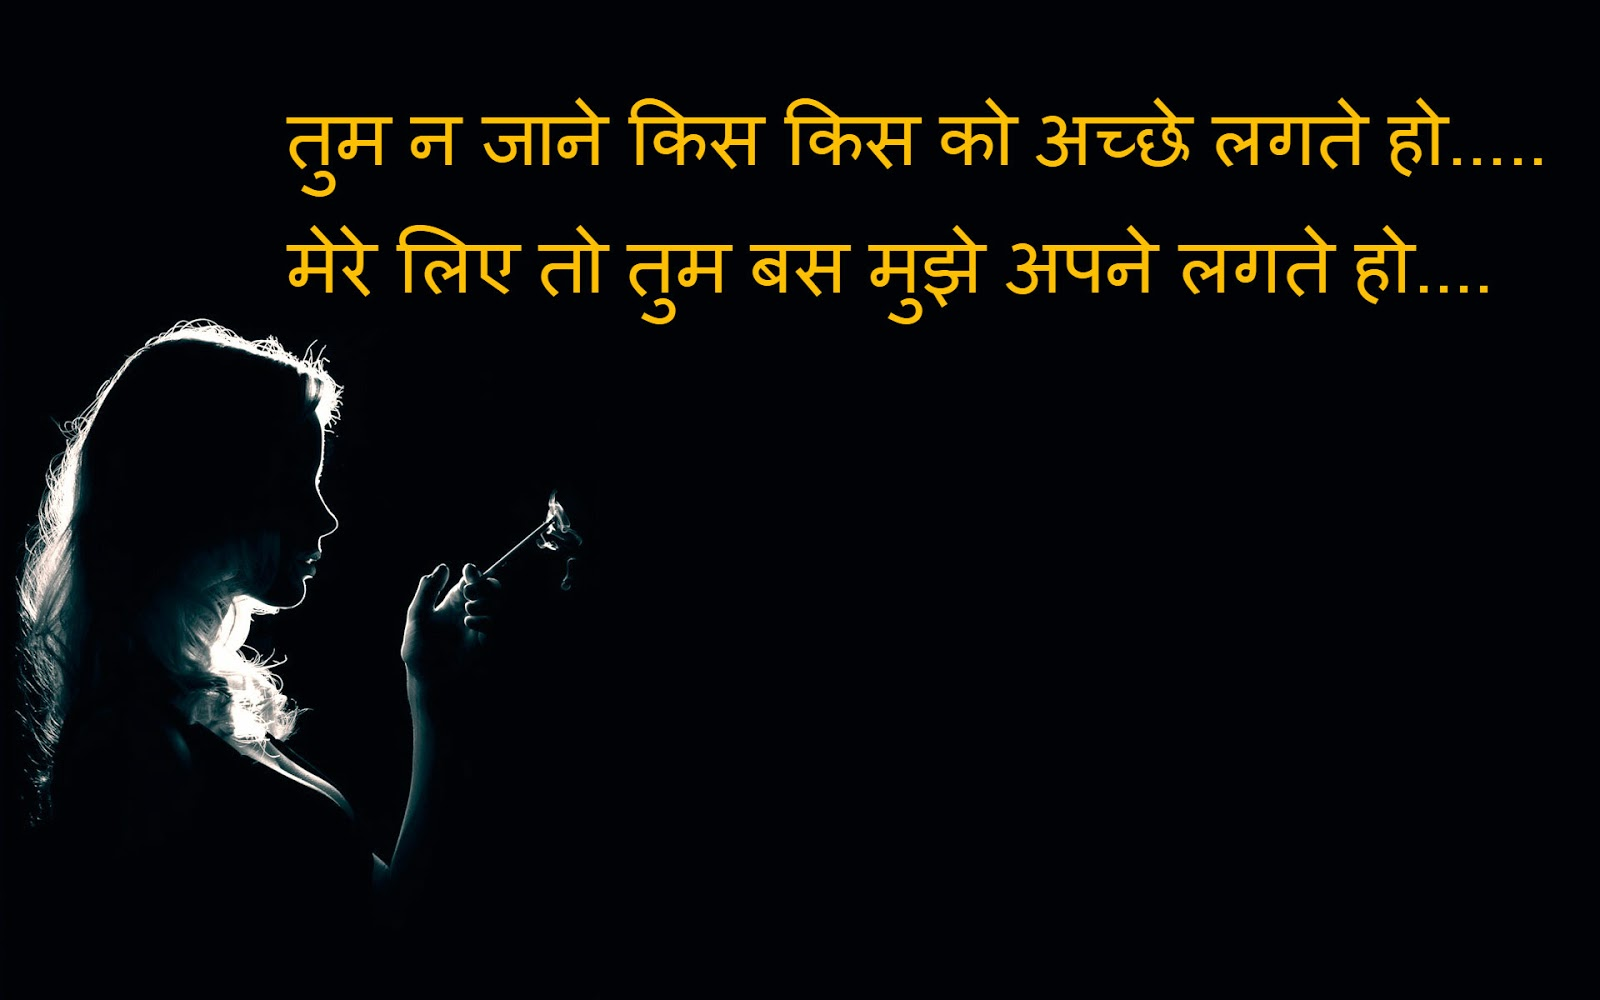 Wallpaper download love shayri - Superhit Attitude Hindi Shayari Of Junun Shayari